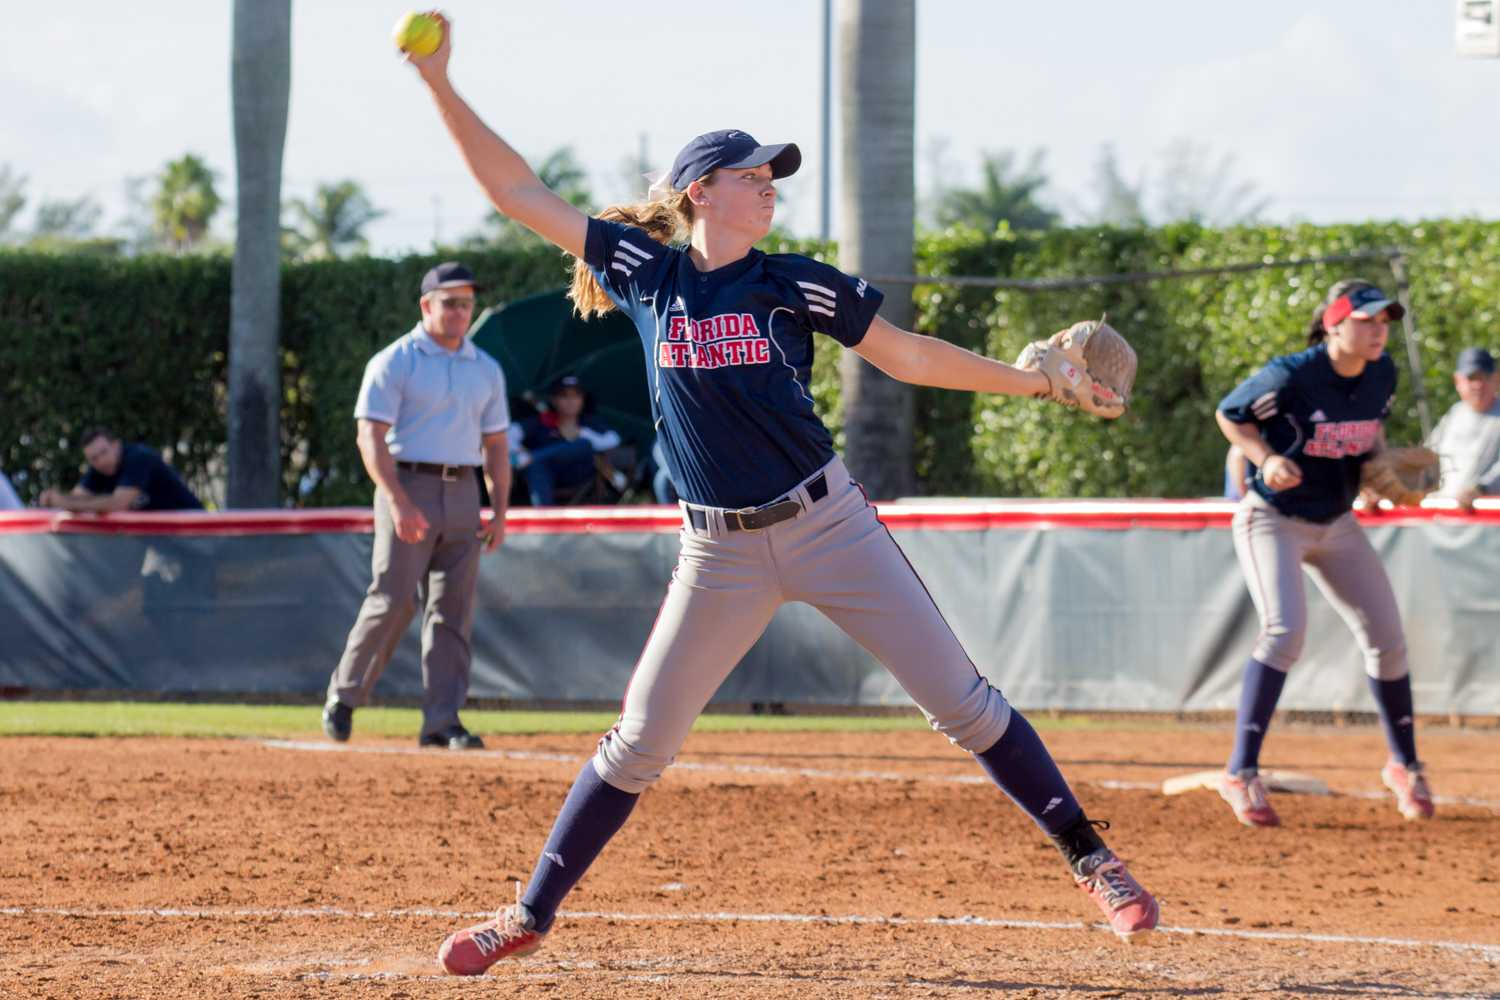 FAU v. LIU_Softball_Idalis Streat-3